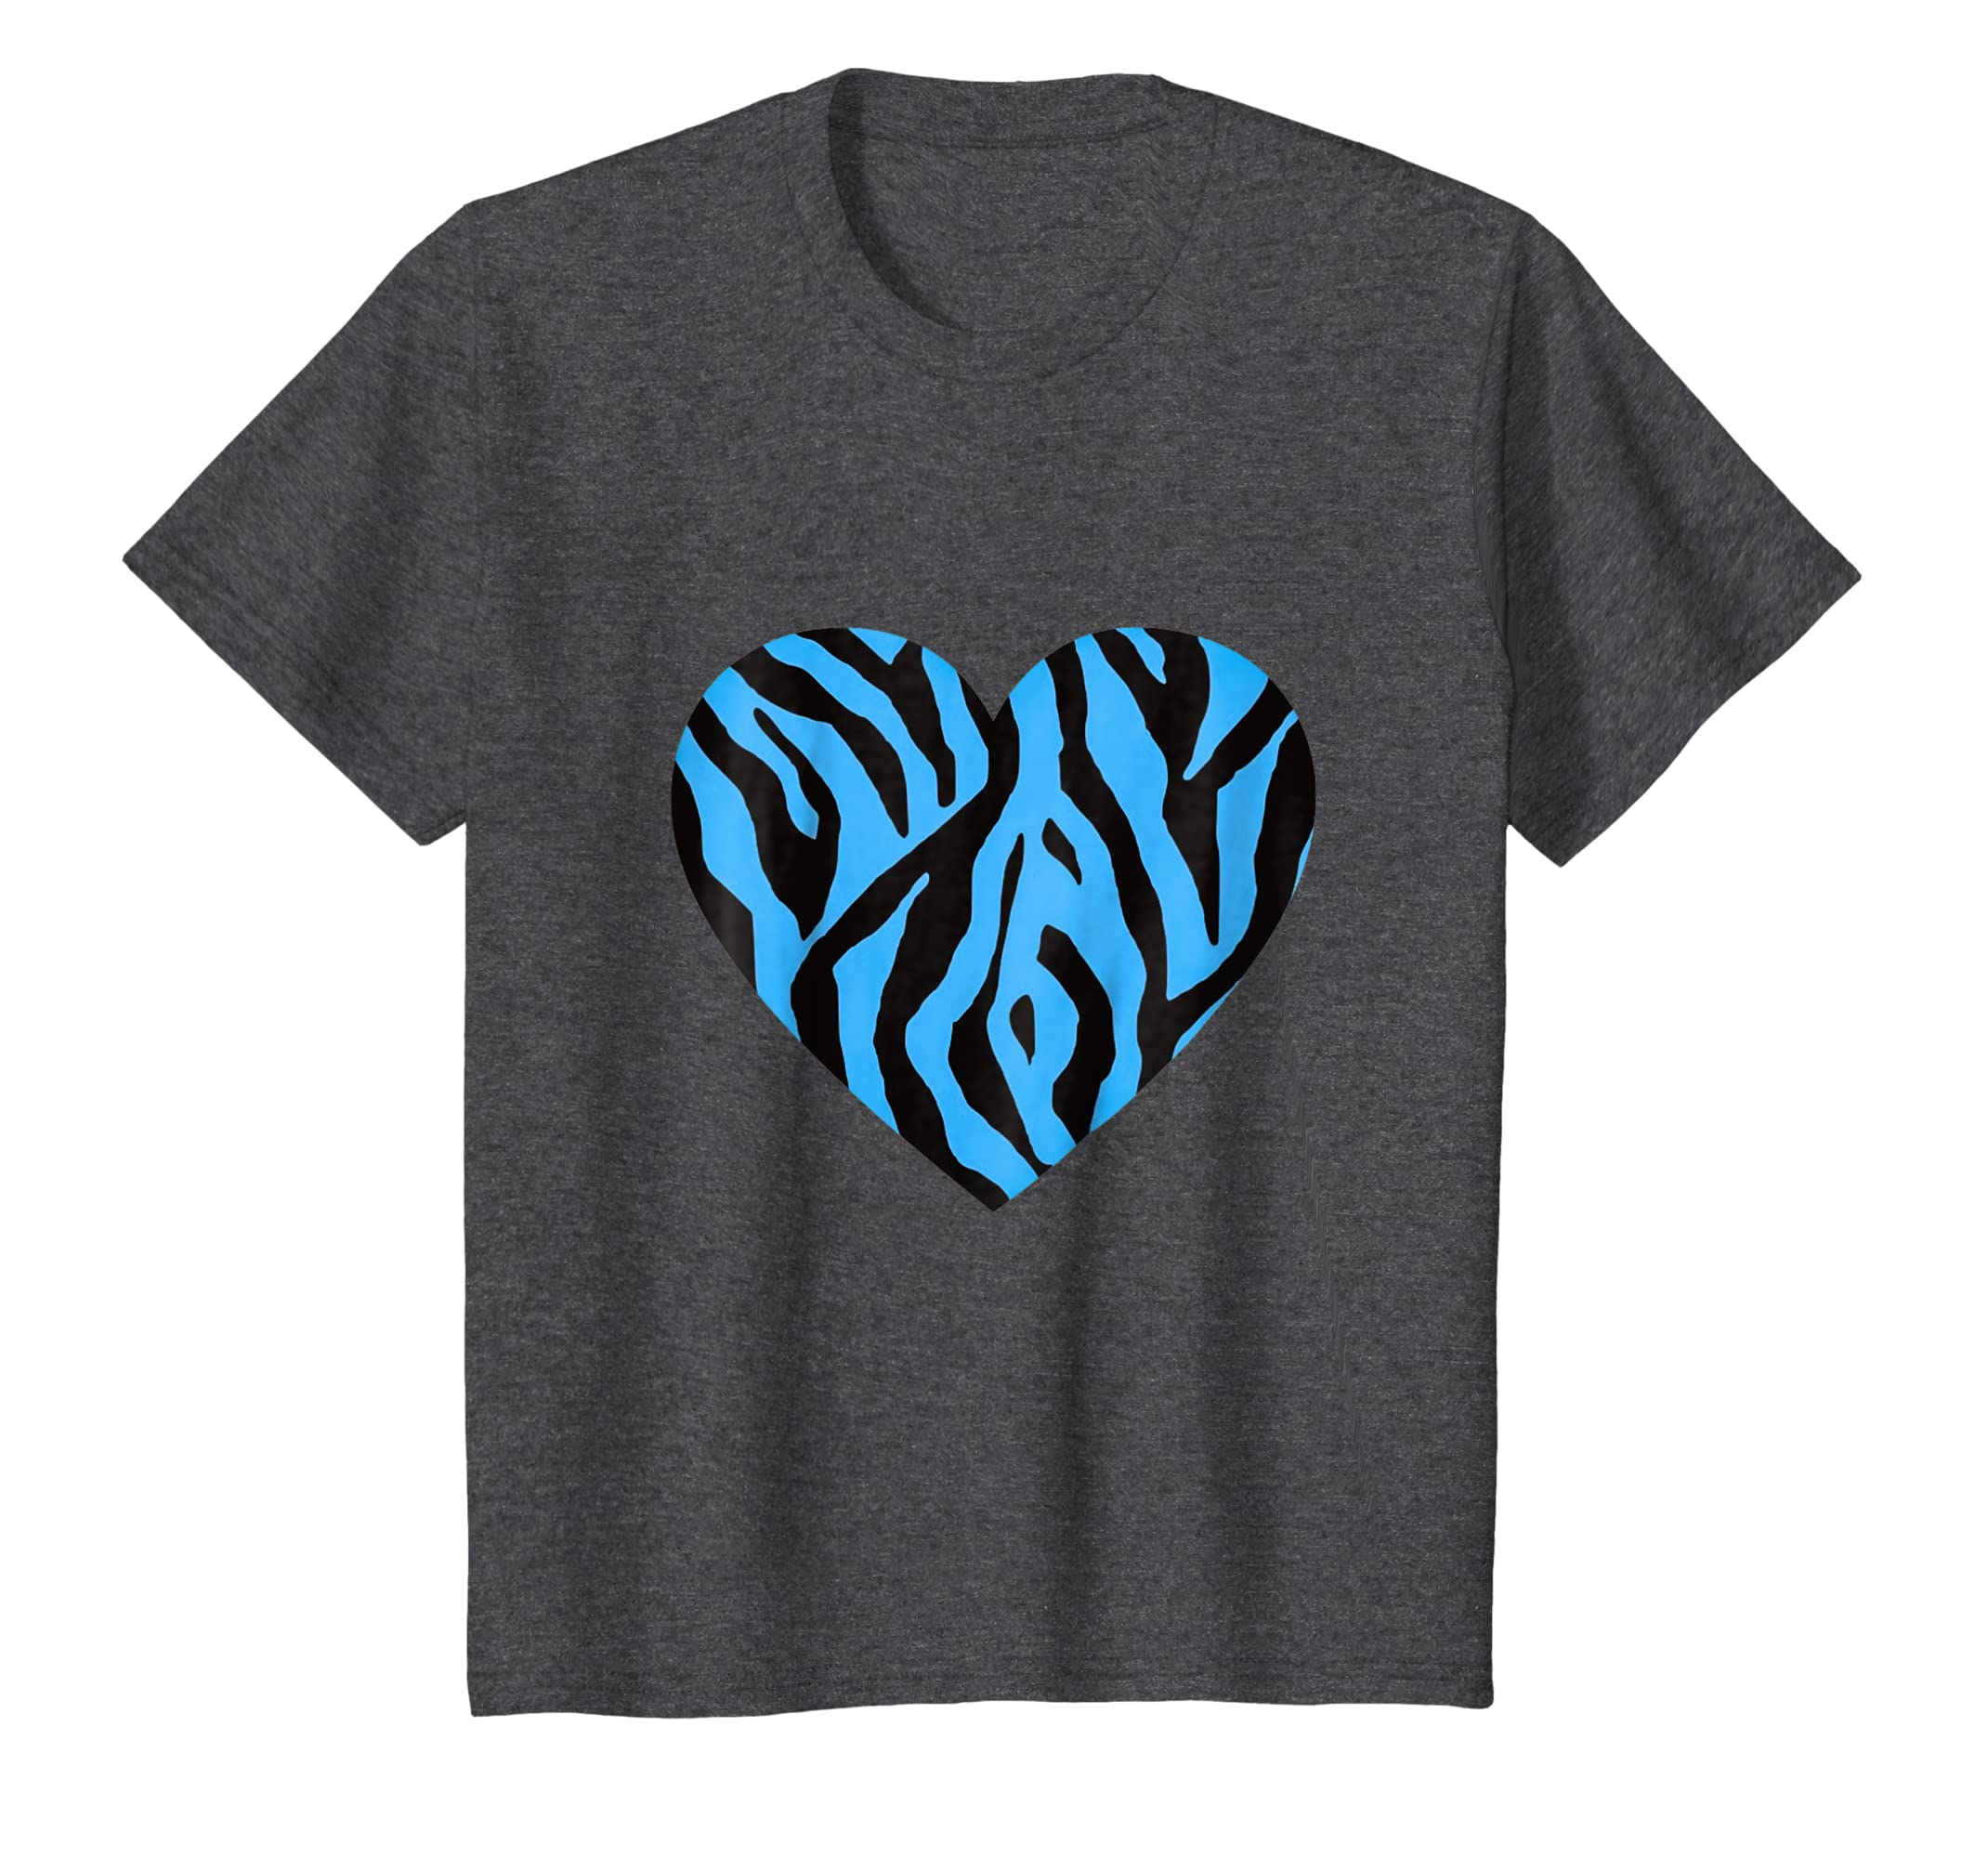 1dfc10ed15 Amazon.com  Zebra Stripe Heart t-shirt Blue Animal Print Design  Clothing